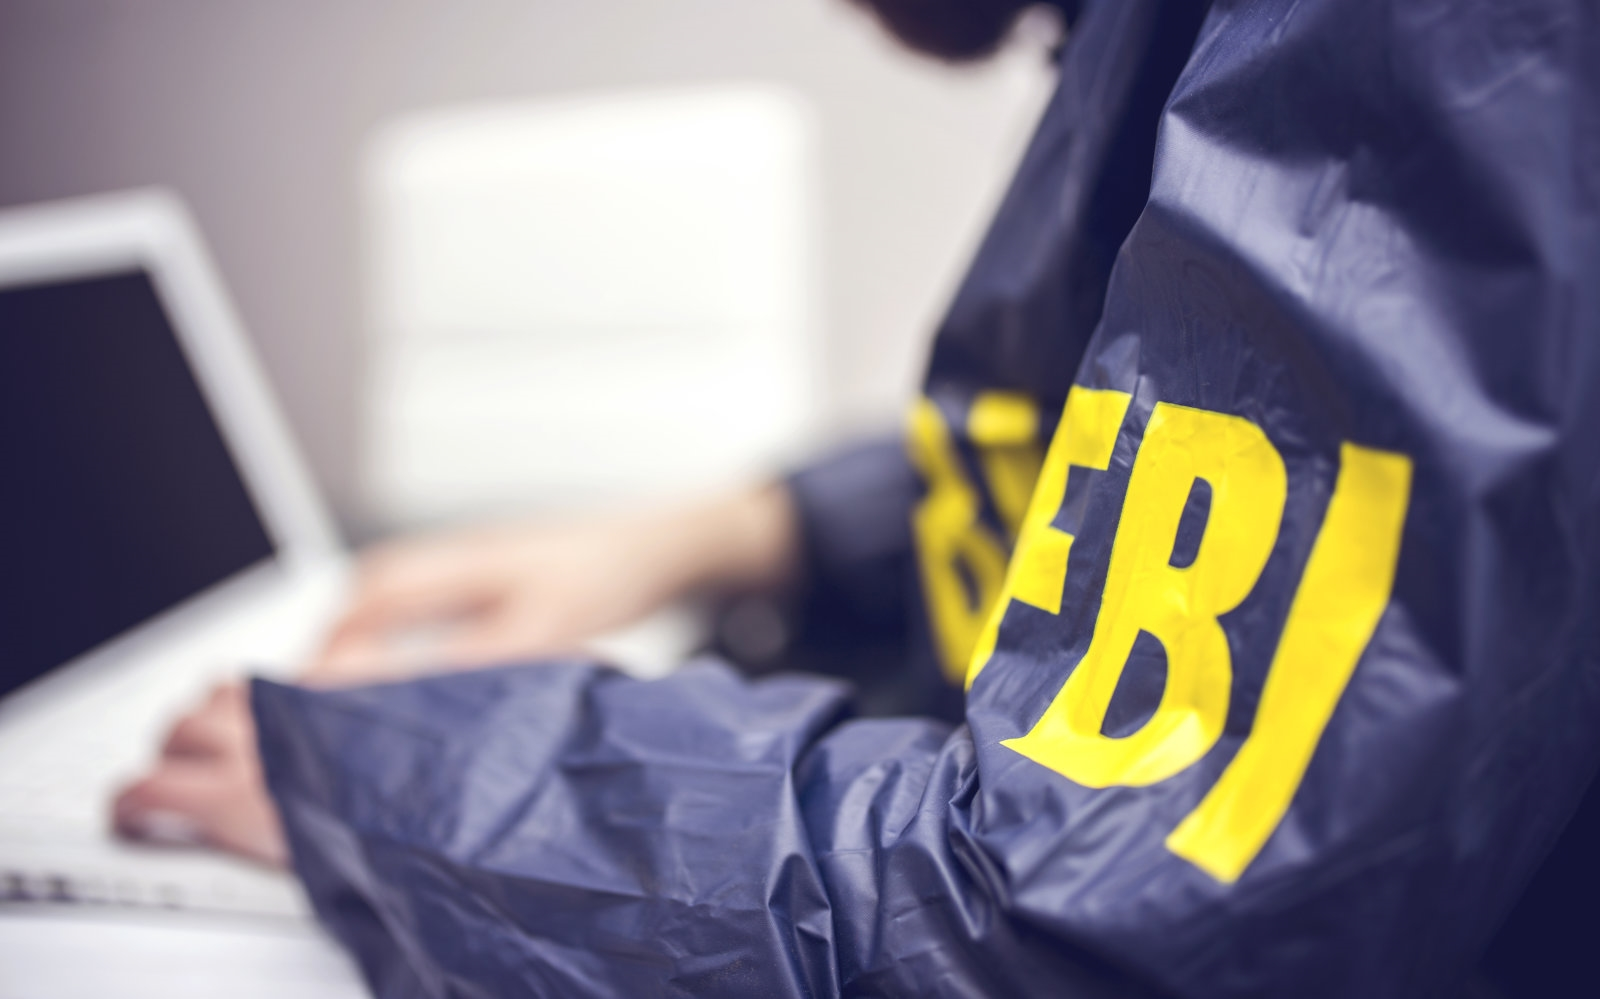 FBI-related breach reportedly compromised federal agents' details | DeviceDaily.com